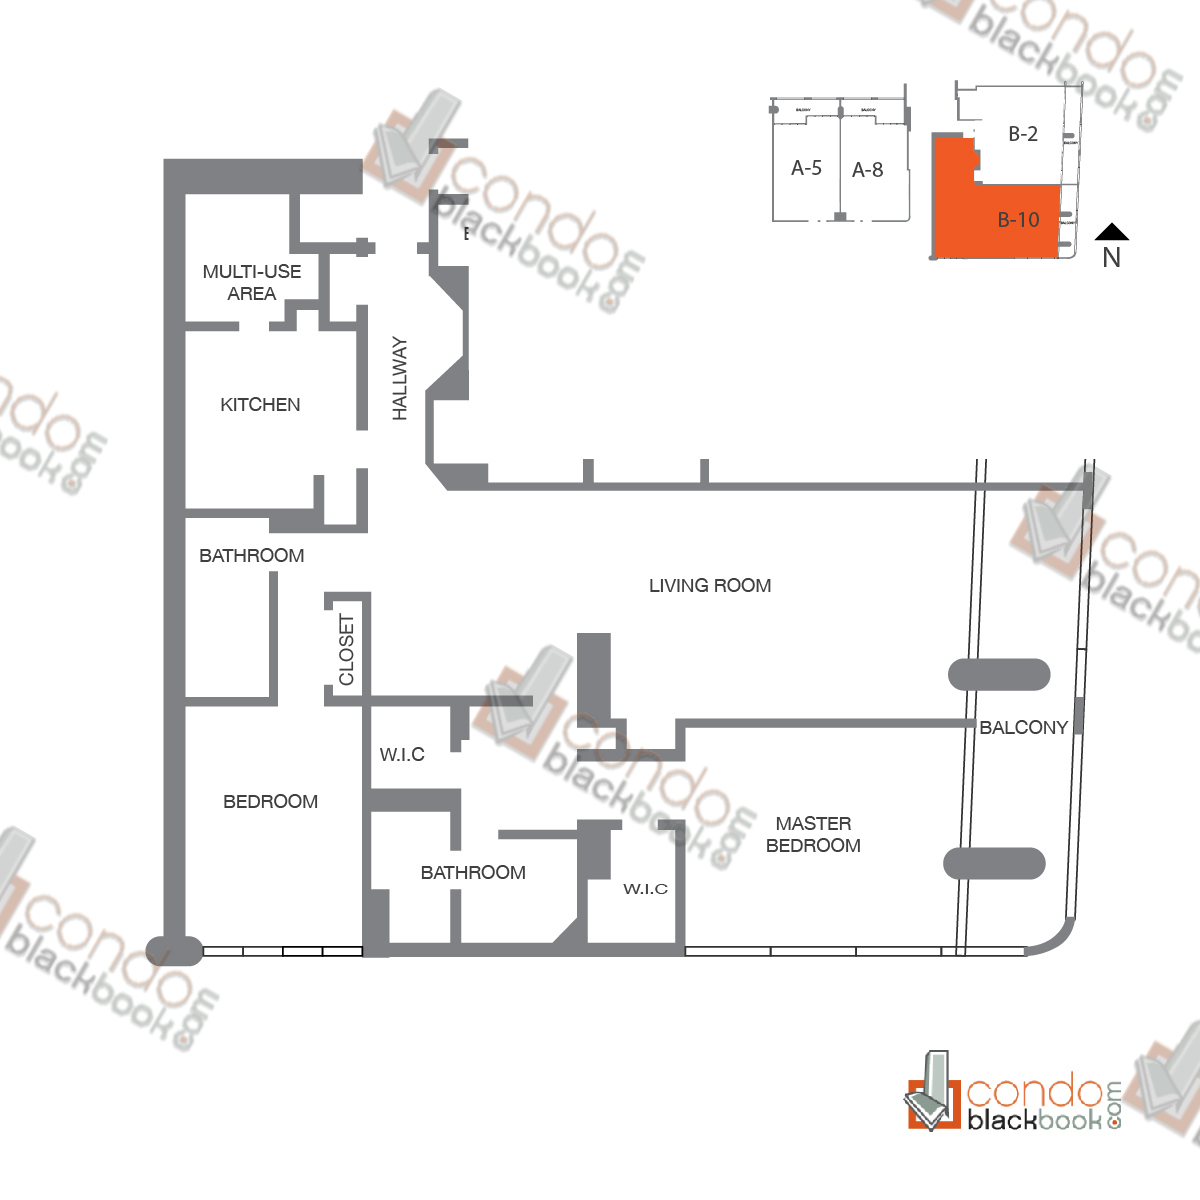 Floor plan for The Grand Arts & Entertainment District Miami, model Unit 31, line A-3131, B-4131, 3/3 bedrooms, 3,089 sq ft